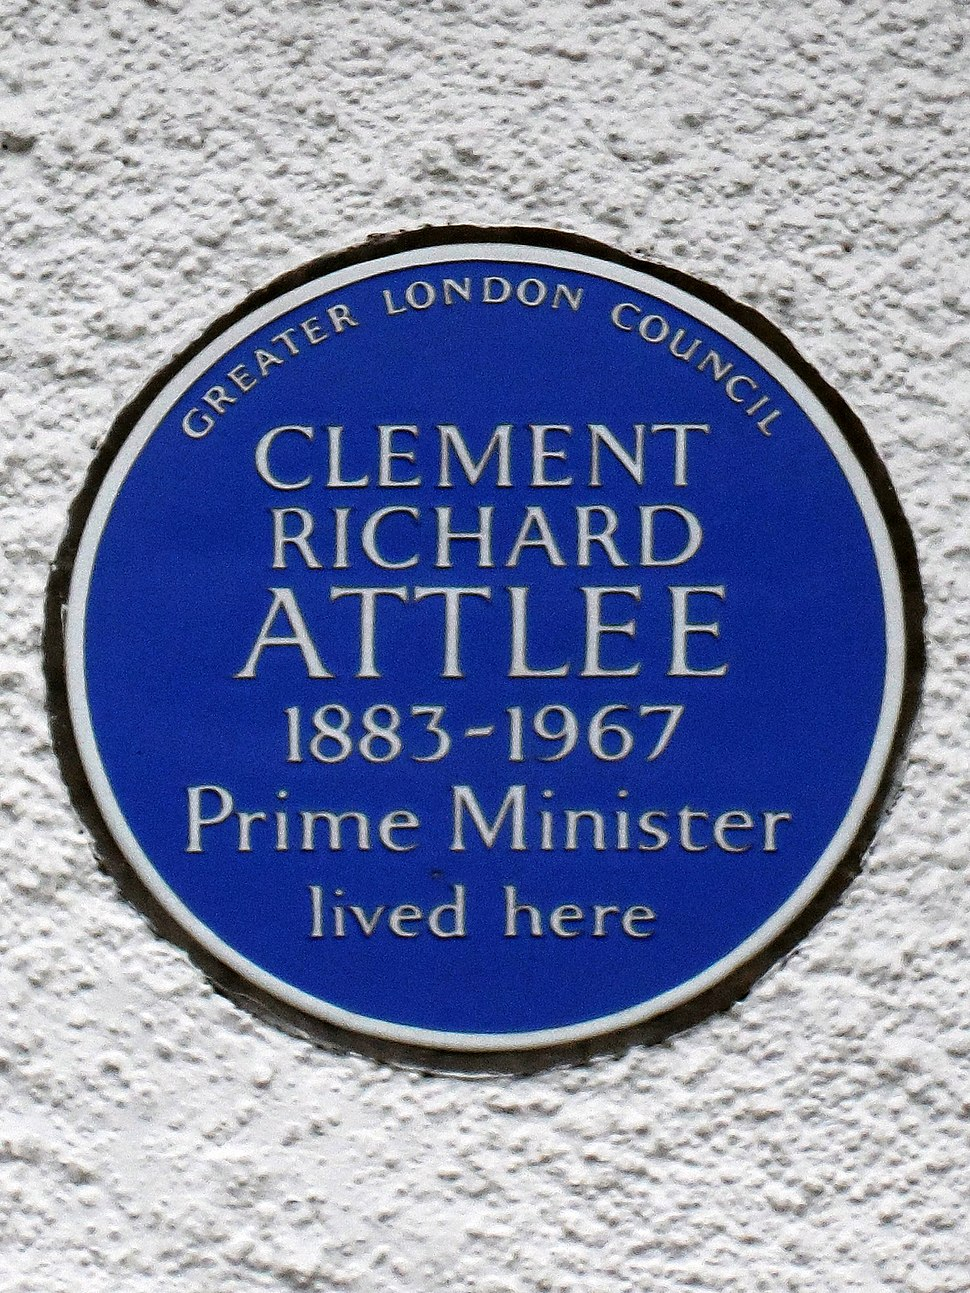 Clement Richard Attlee 1883-1967 Prime Minister lived here (crop)